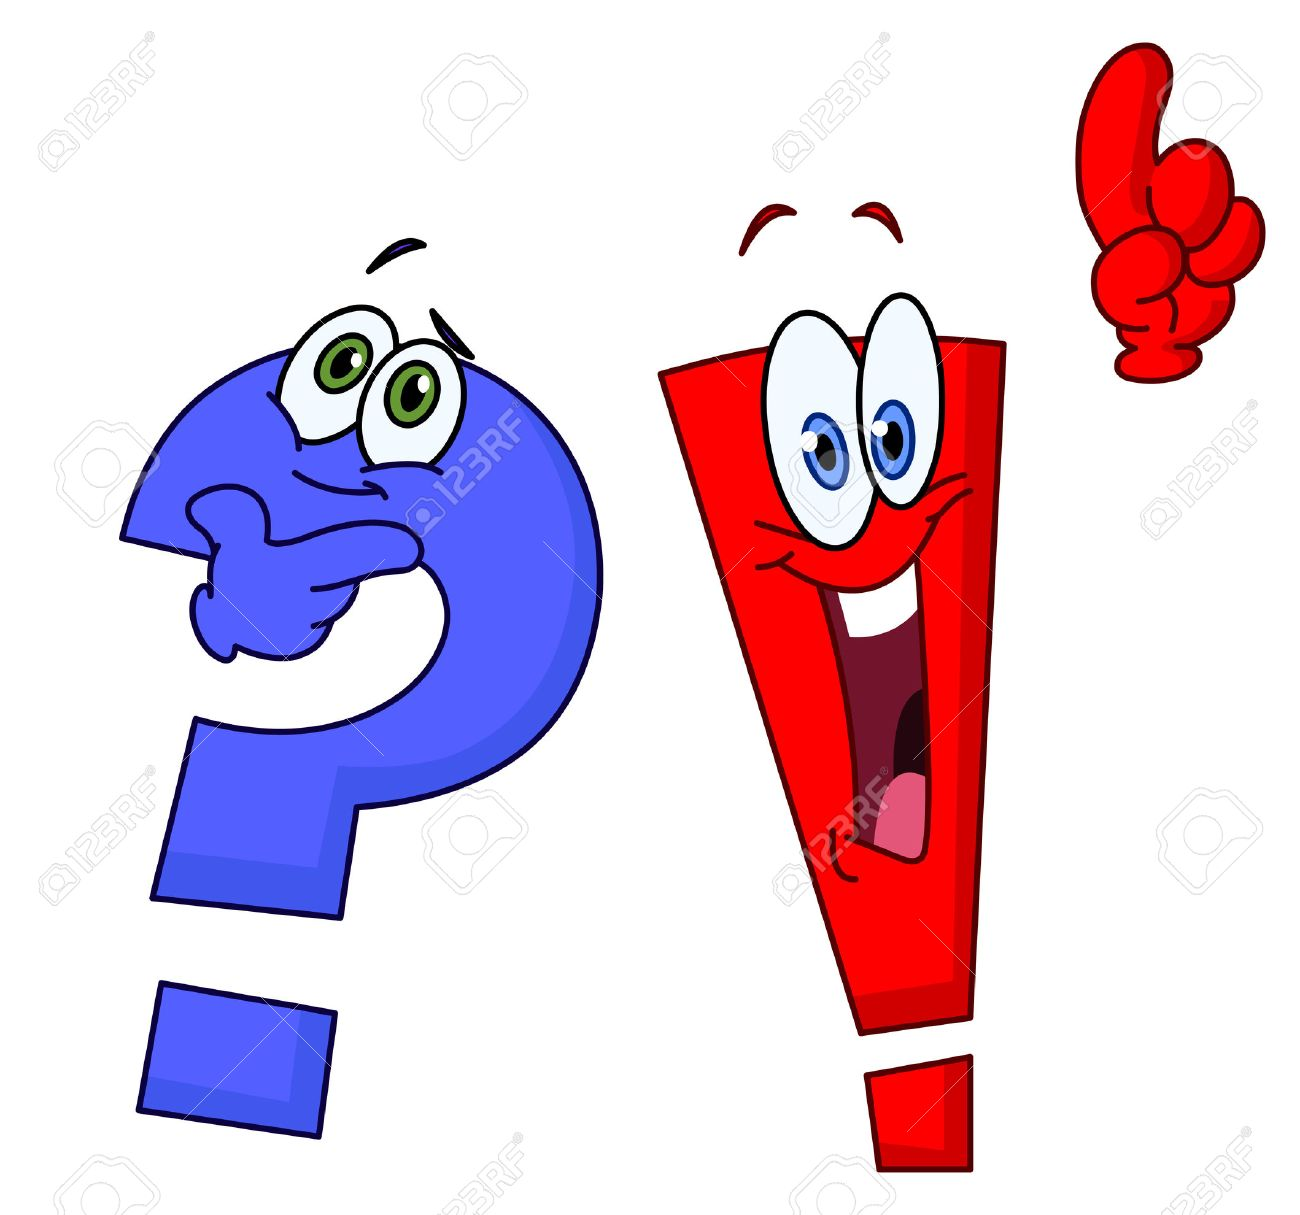 Pics photos clip art cartoon scientist with question mark stock - Wondering Cartoon Question And Exclamation Marks Illustration